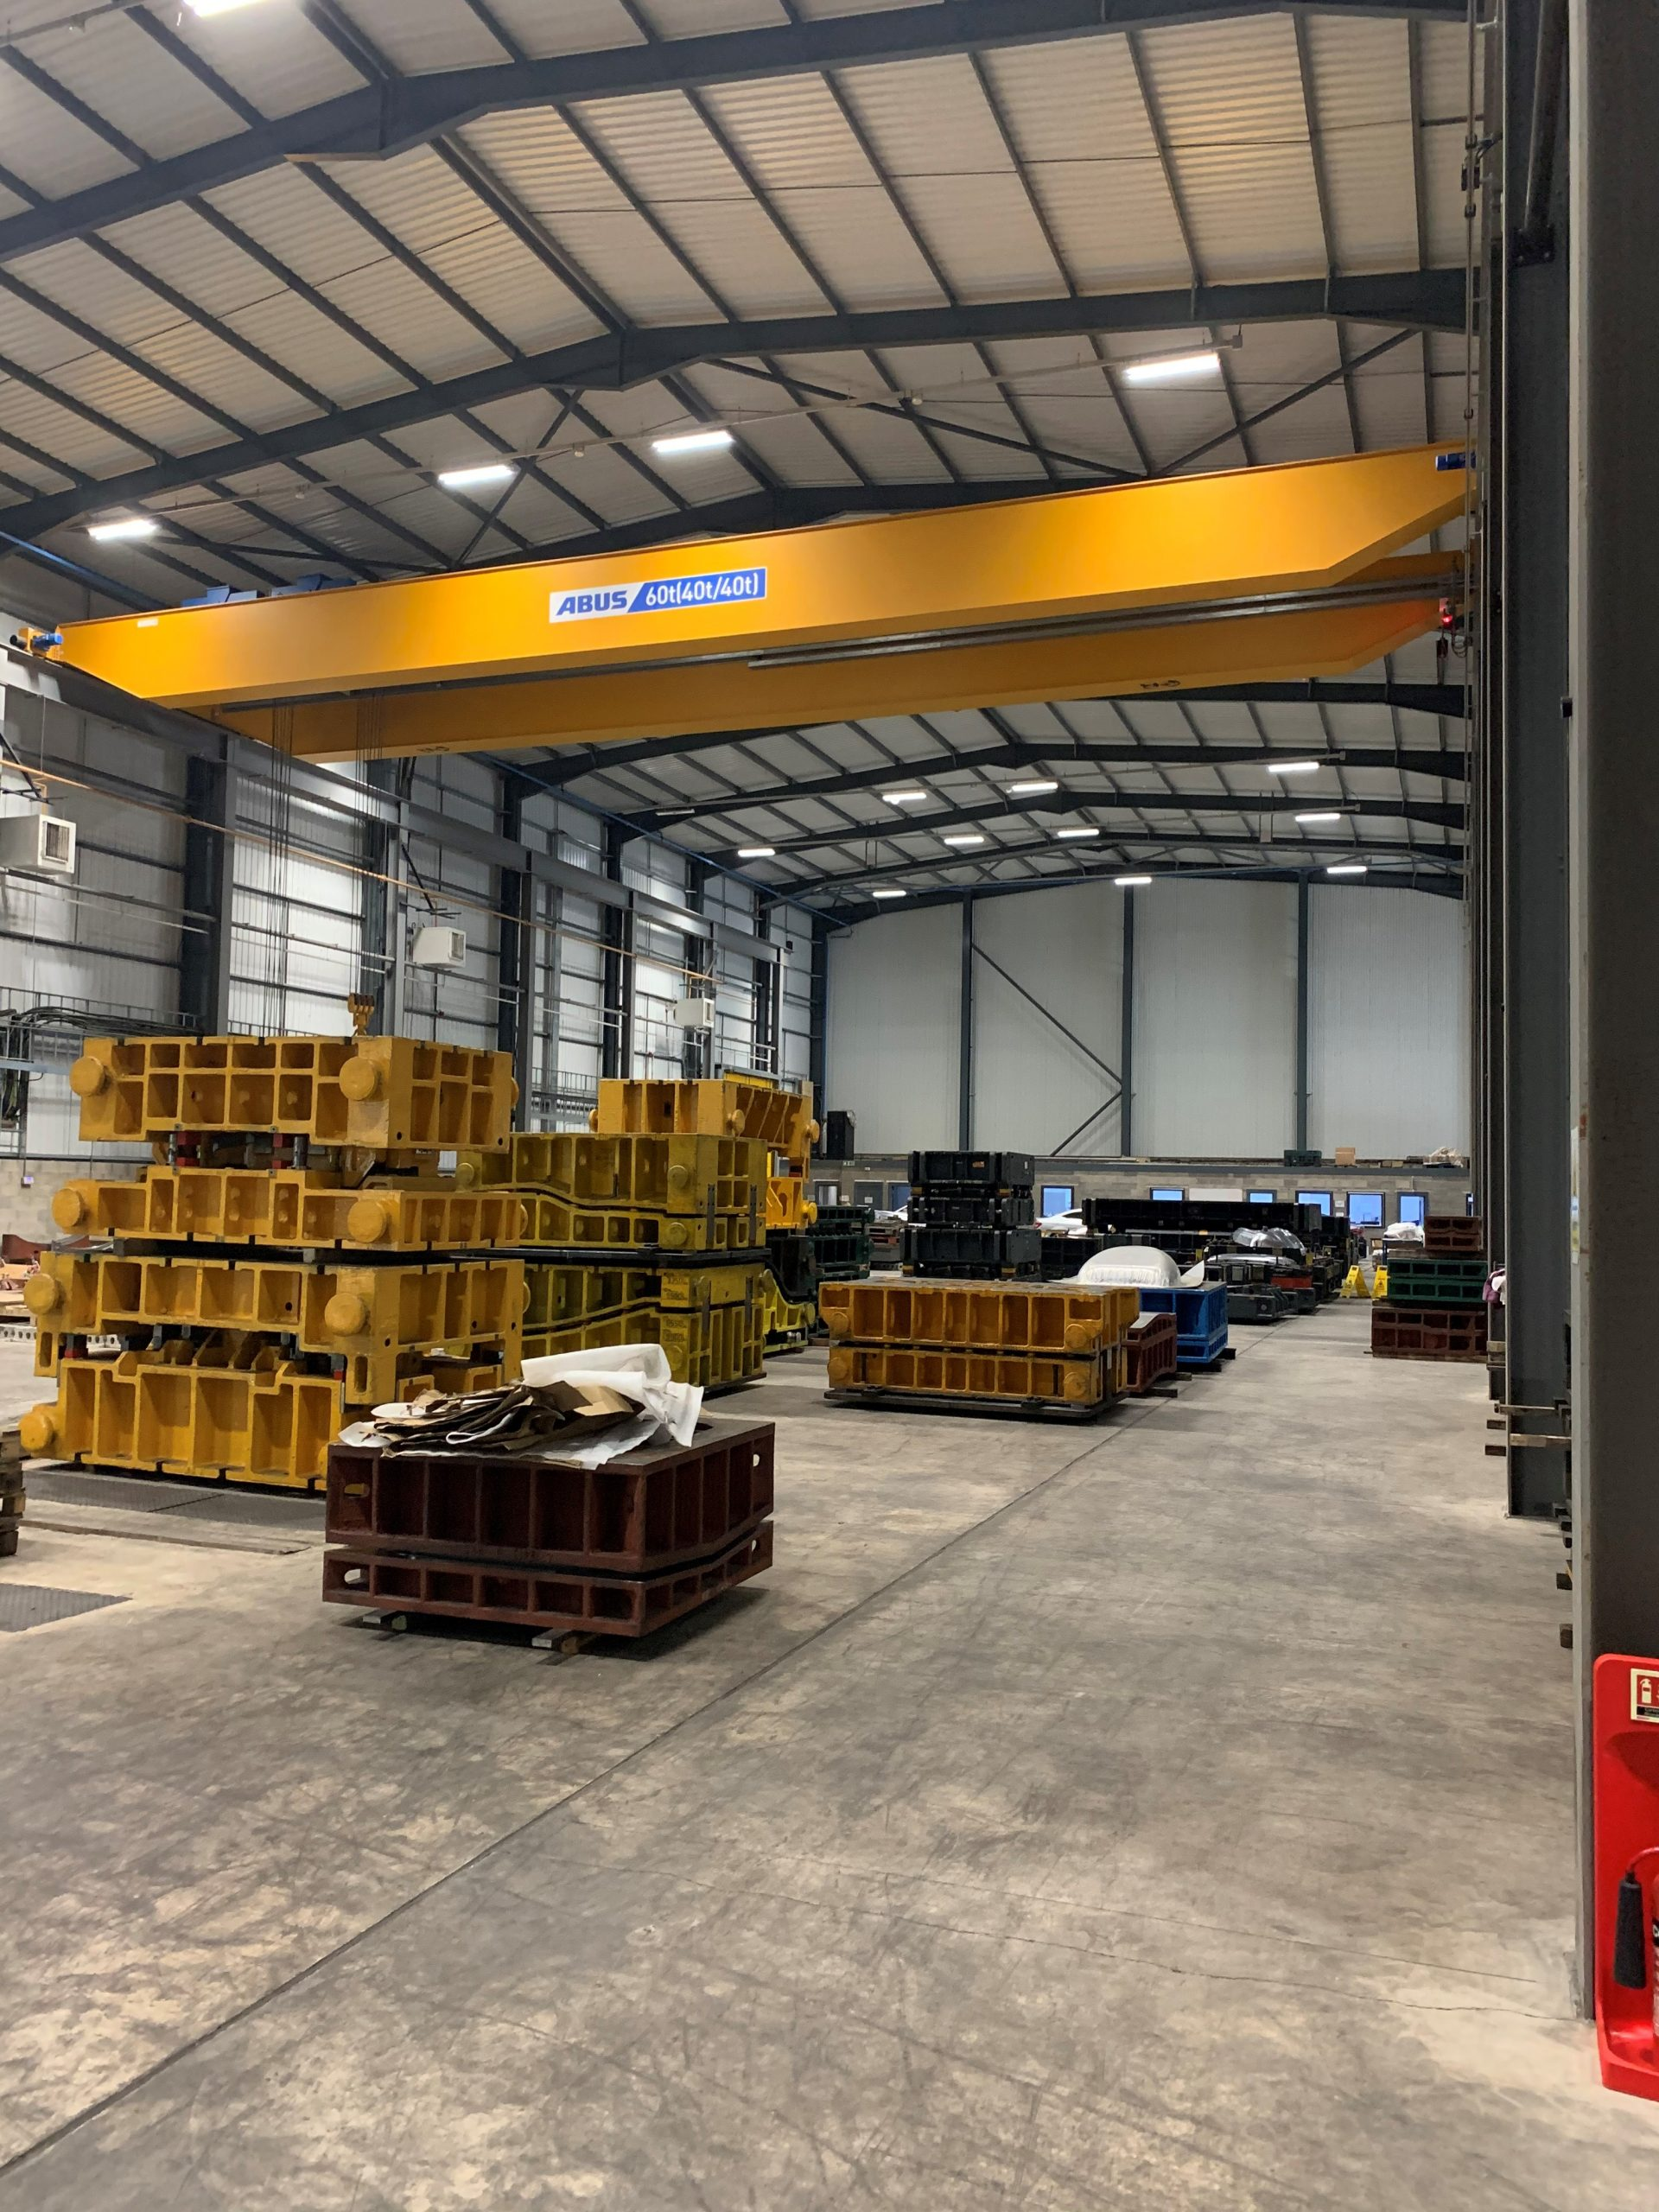 60 tonne safe working load Abus crane, complete with 2 hoists with rams horn hooks